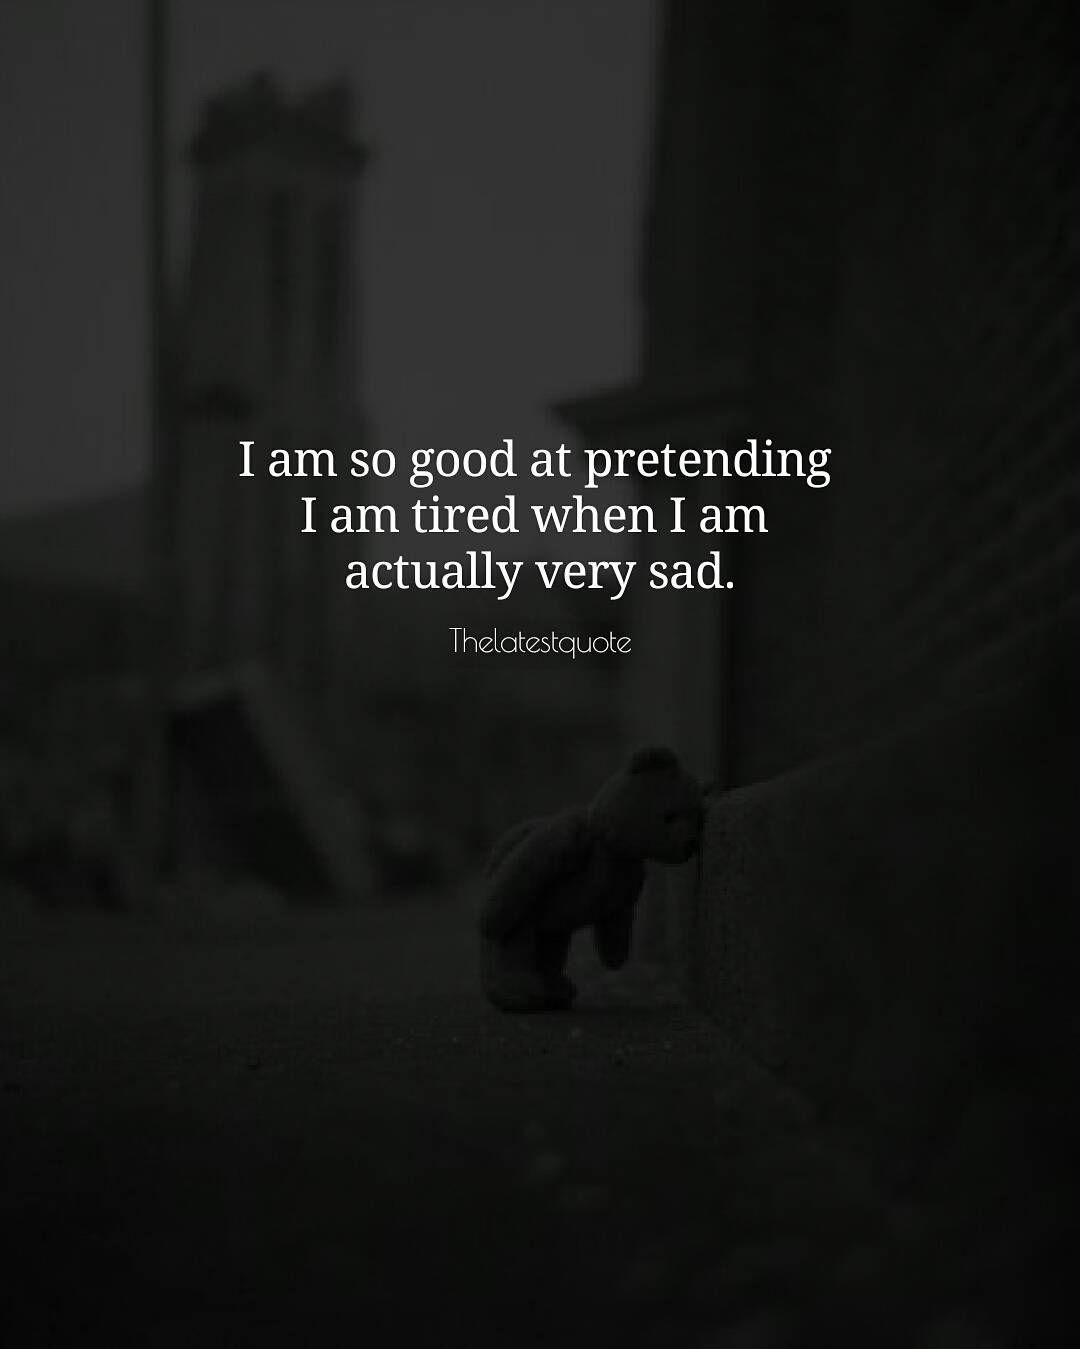 Today I Am Very Sad Quotes: I Am So Good At Pretending I Am Tired When I Am Actually